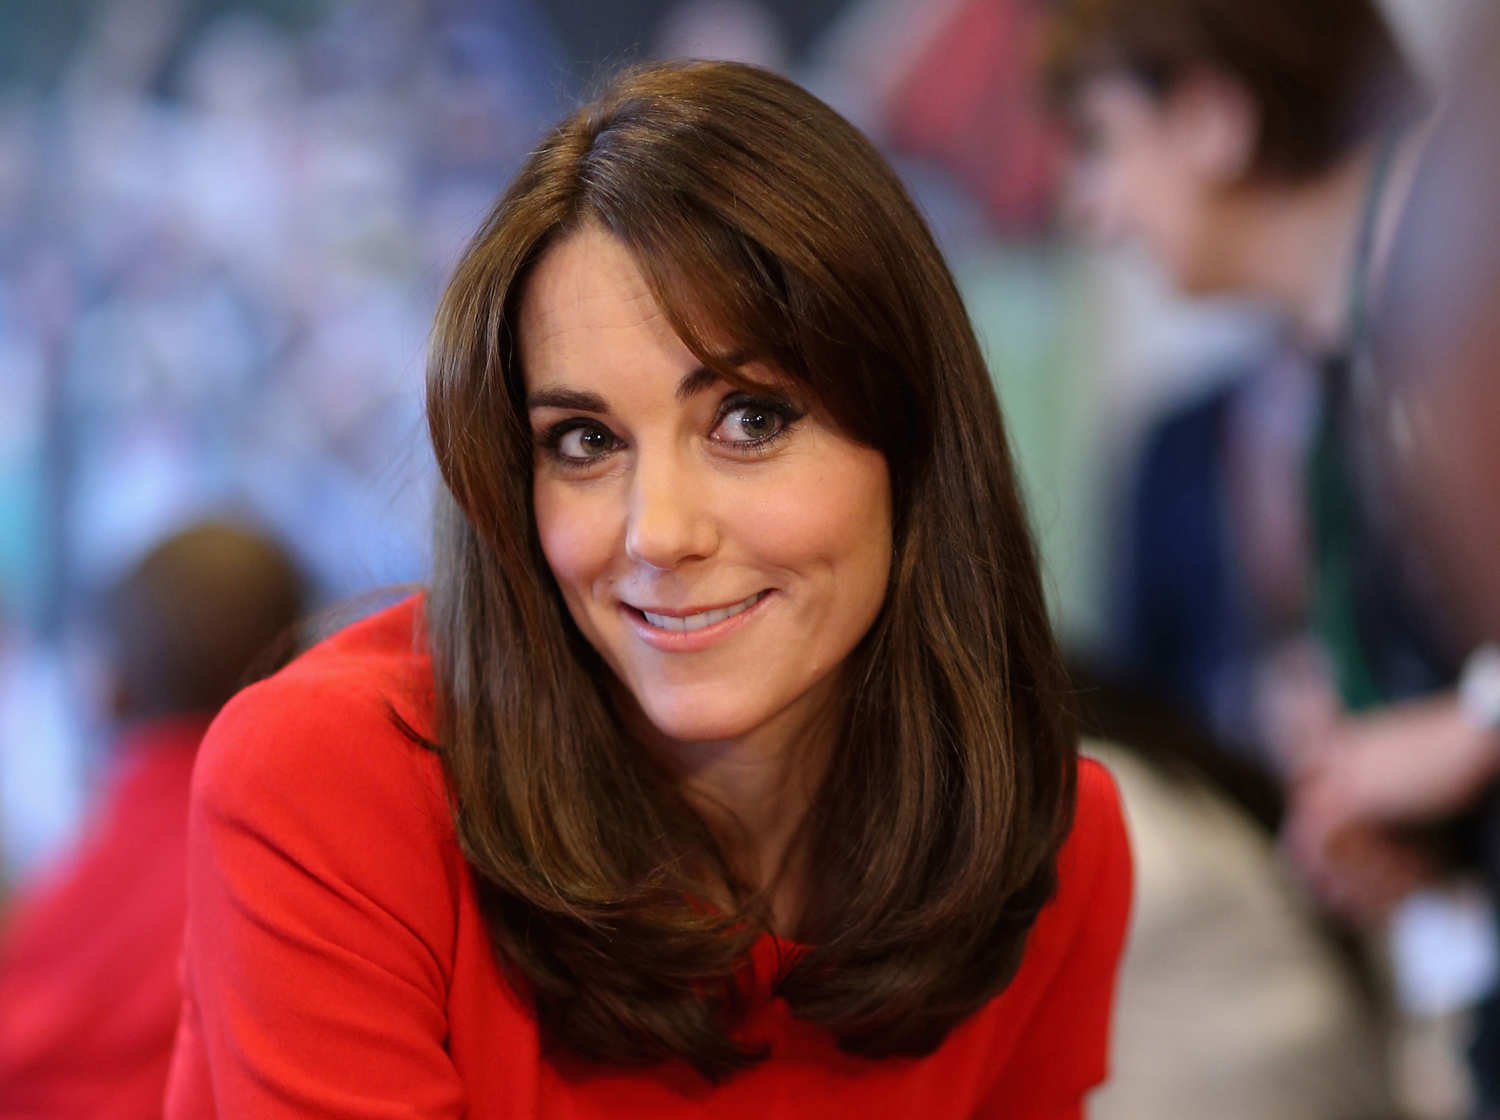 21-kate-middleton-42-80728124-w750-h560-2x